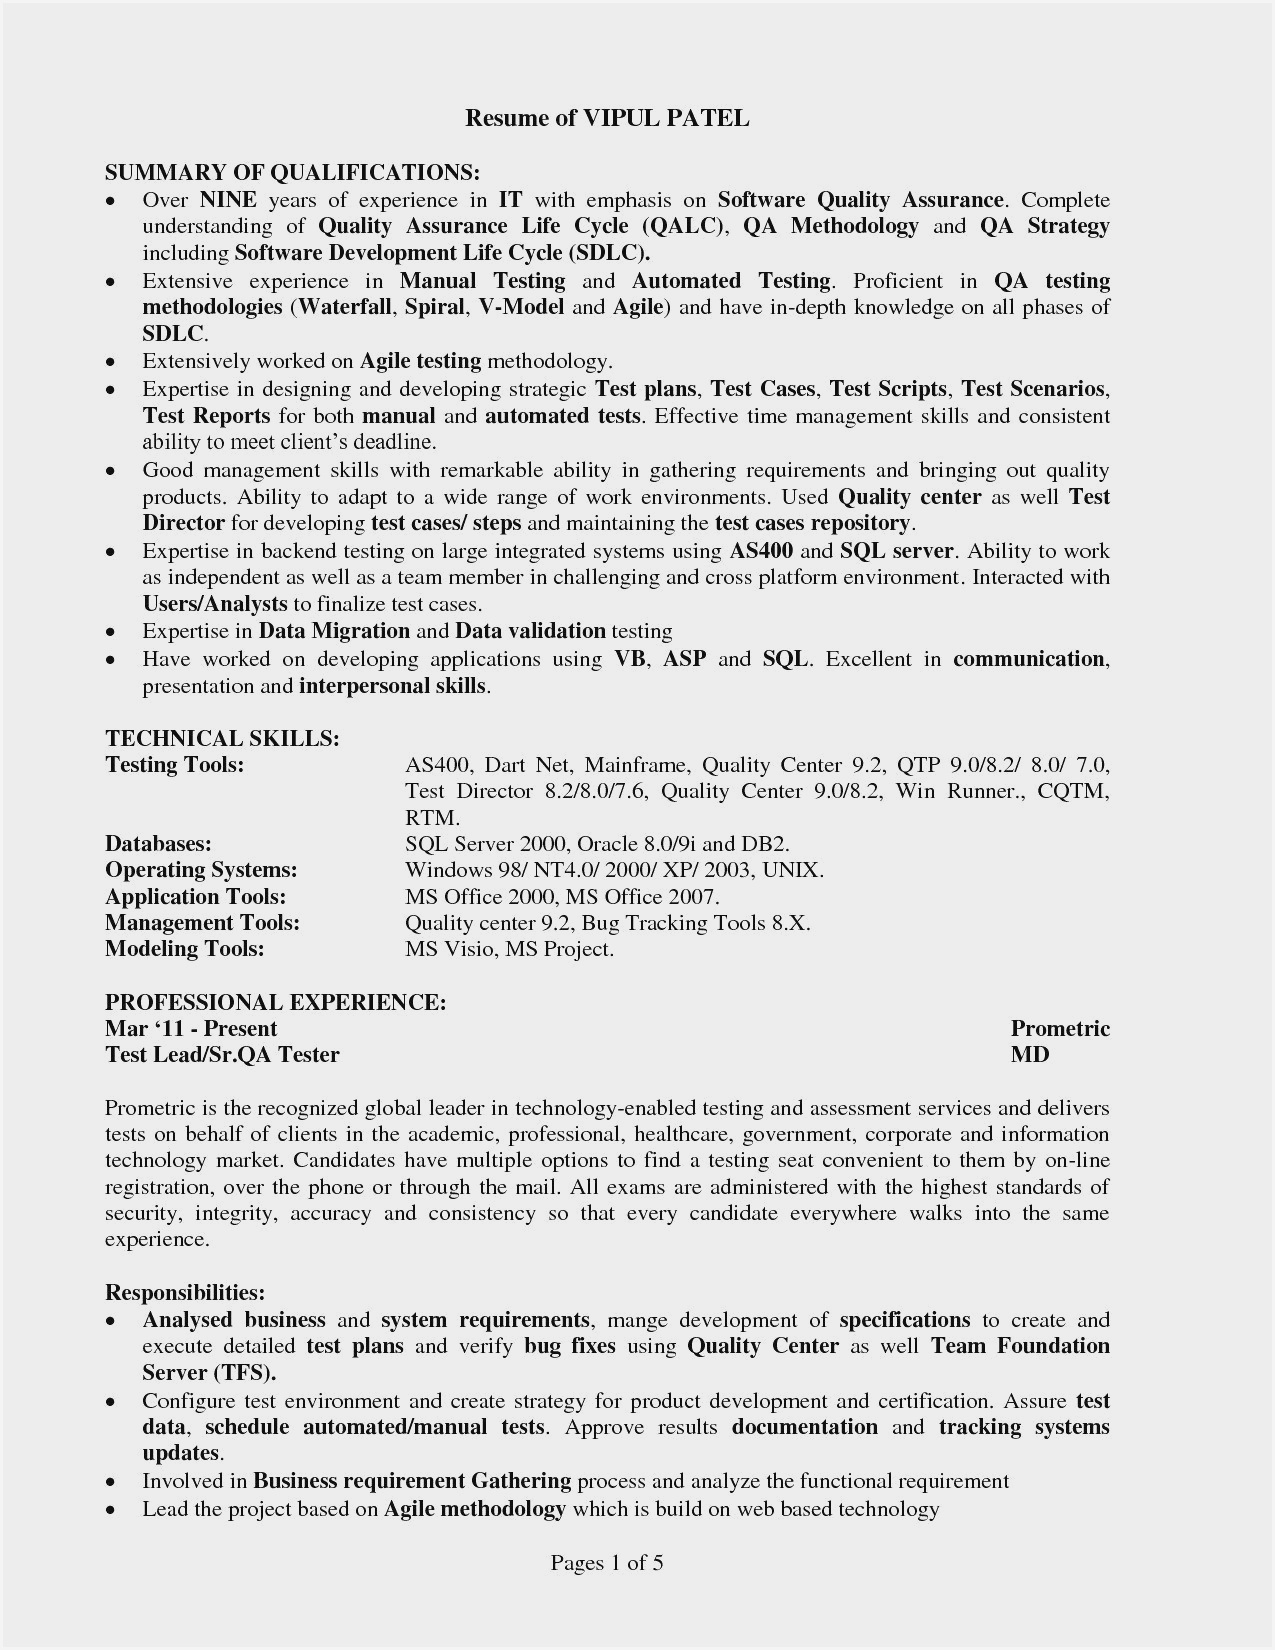 sample resume for experienced software tester entry level manual coach subscription Resume Entry Level Software Tester Resume Sample